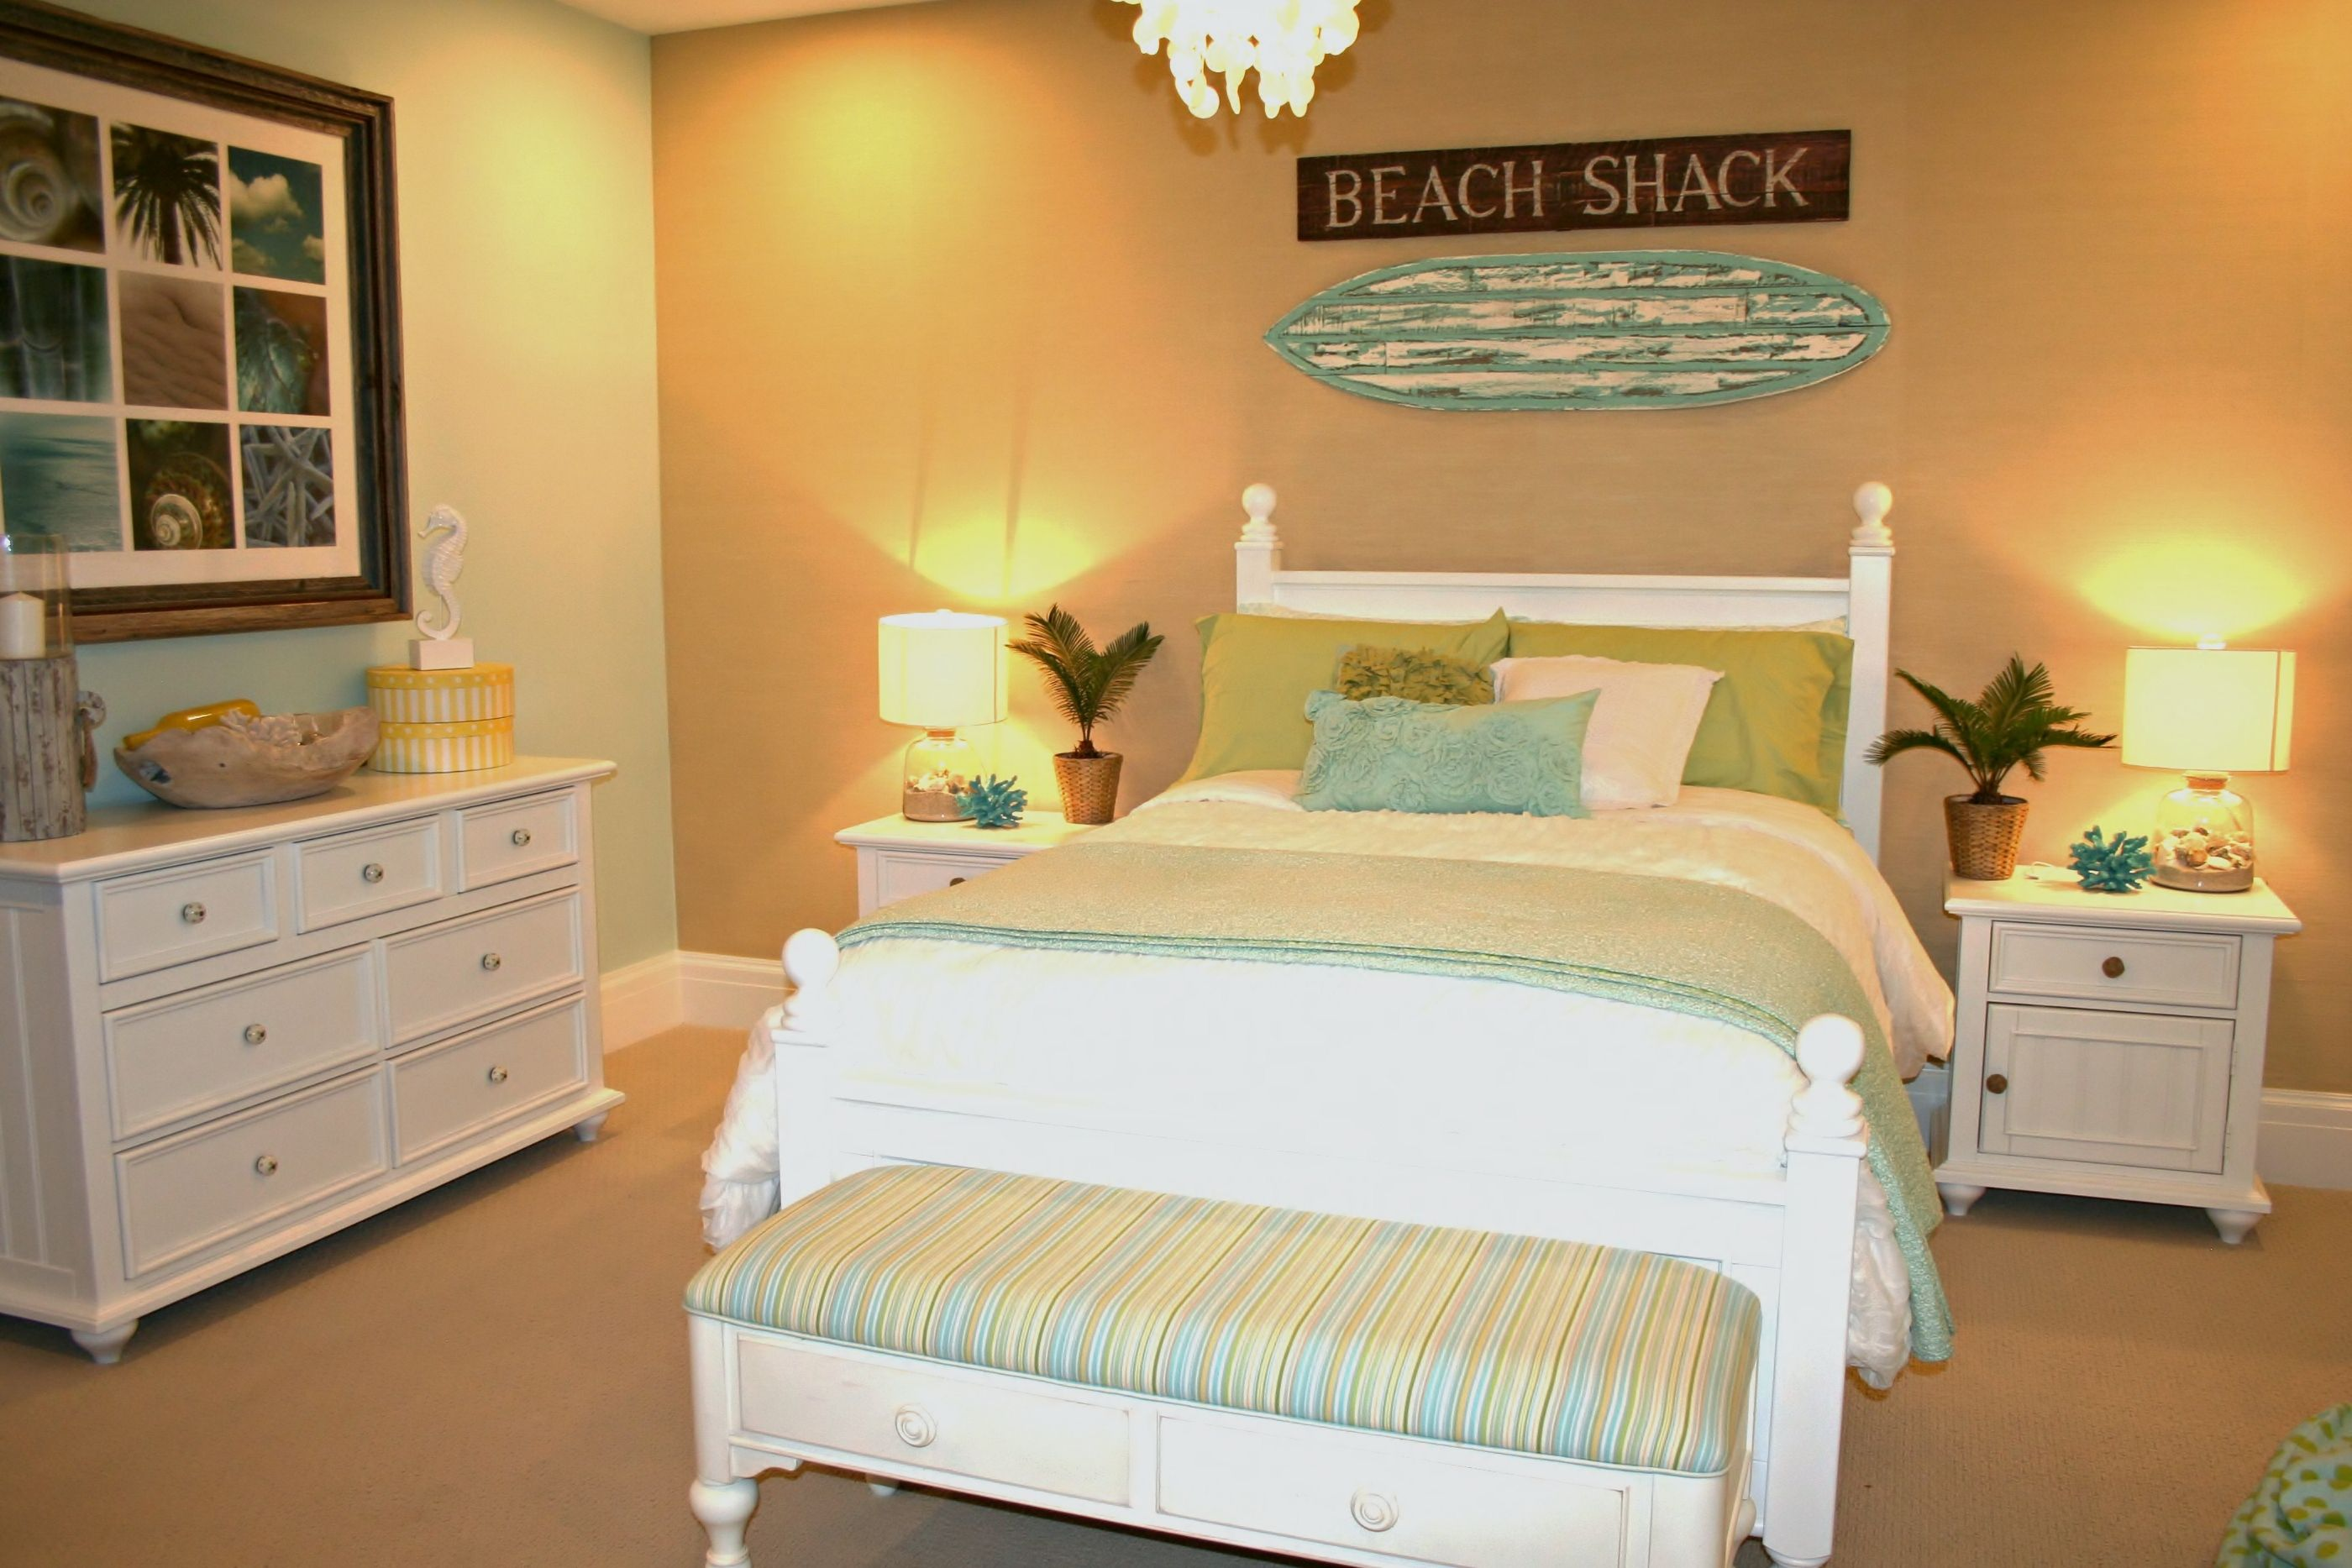 beach themed bedding bed bath and beyond | Training4Green.com ...